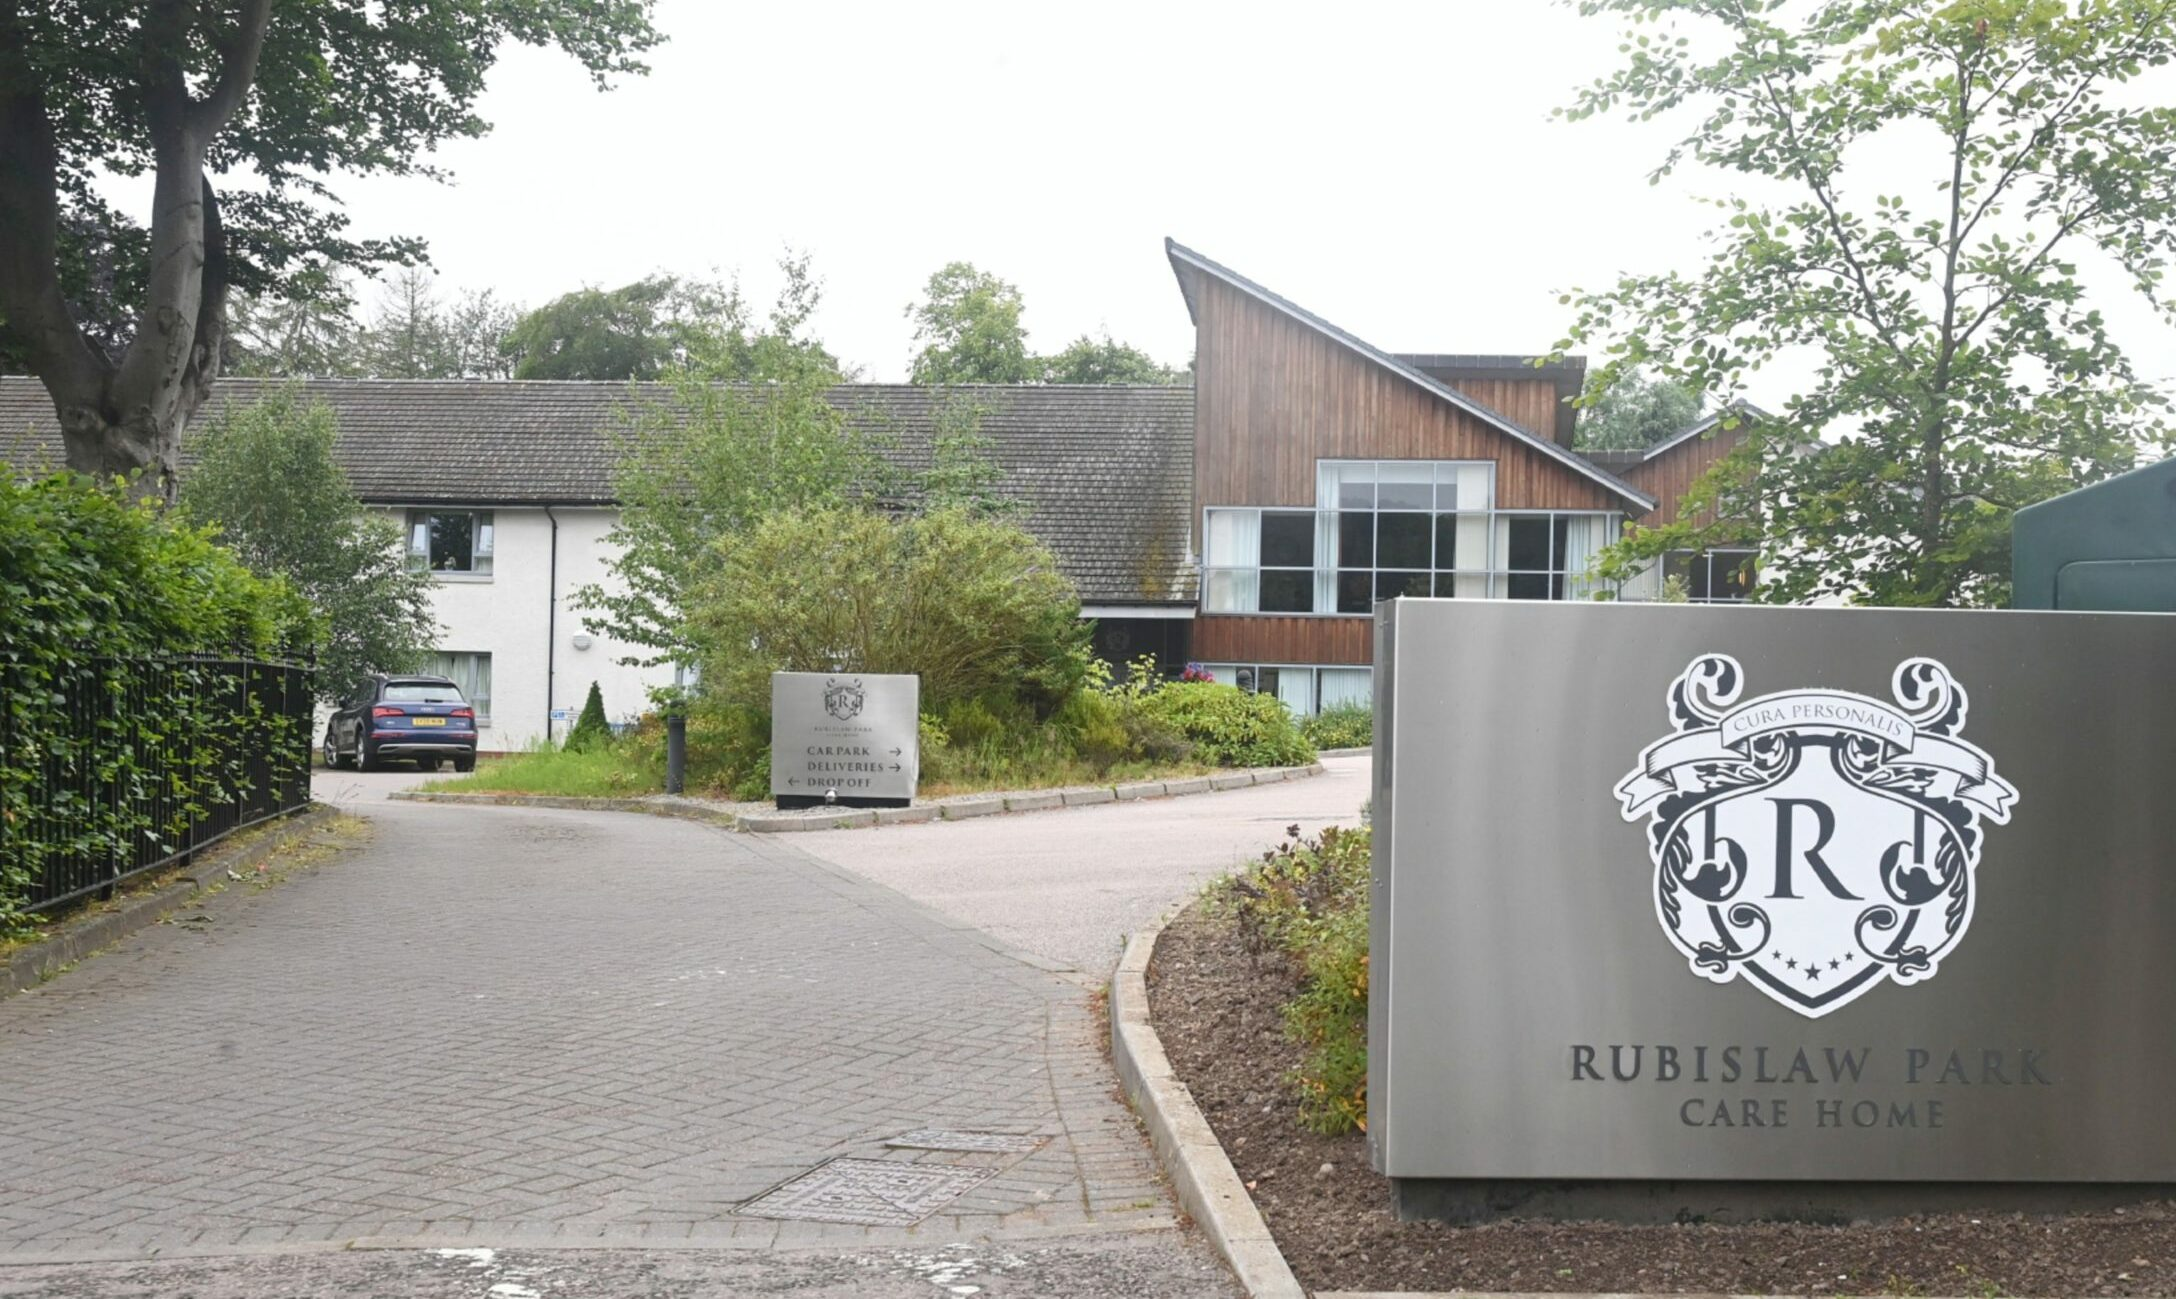 Rubislaw Park Care Home. Picture by Chris Sumner